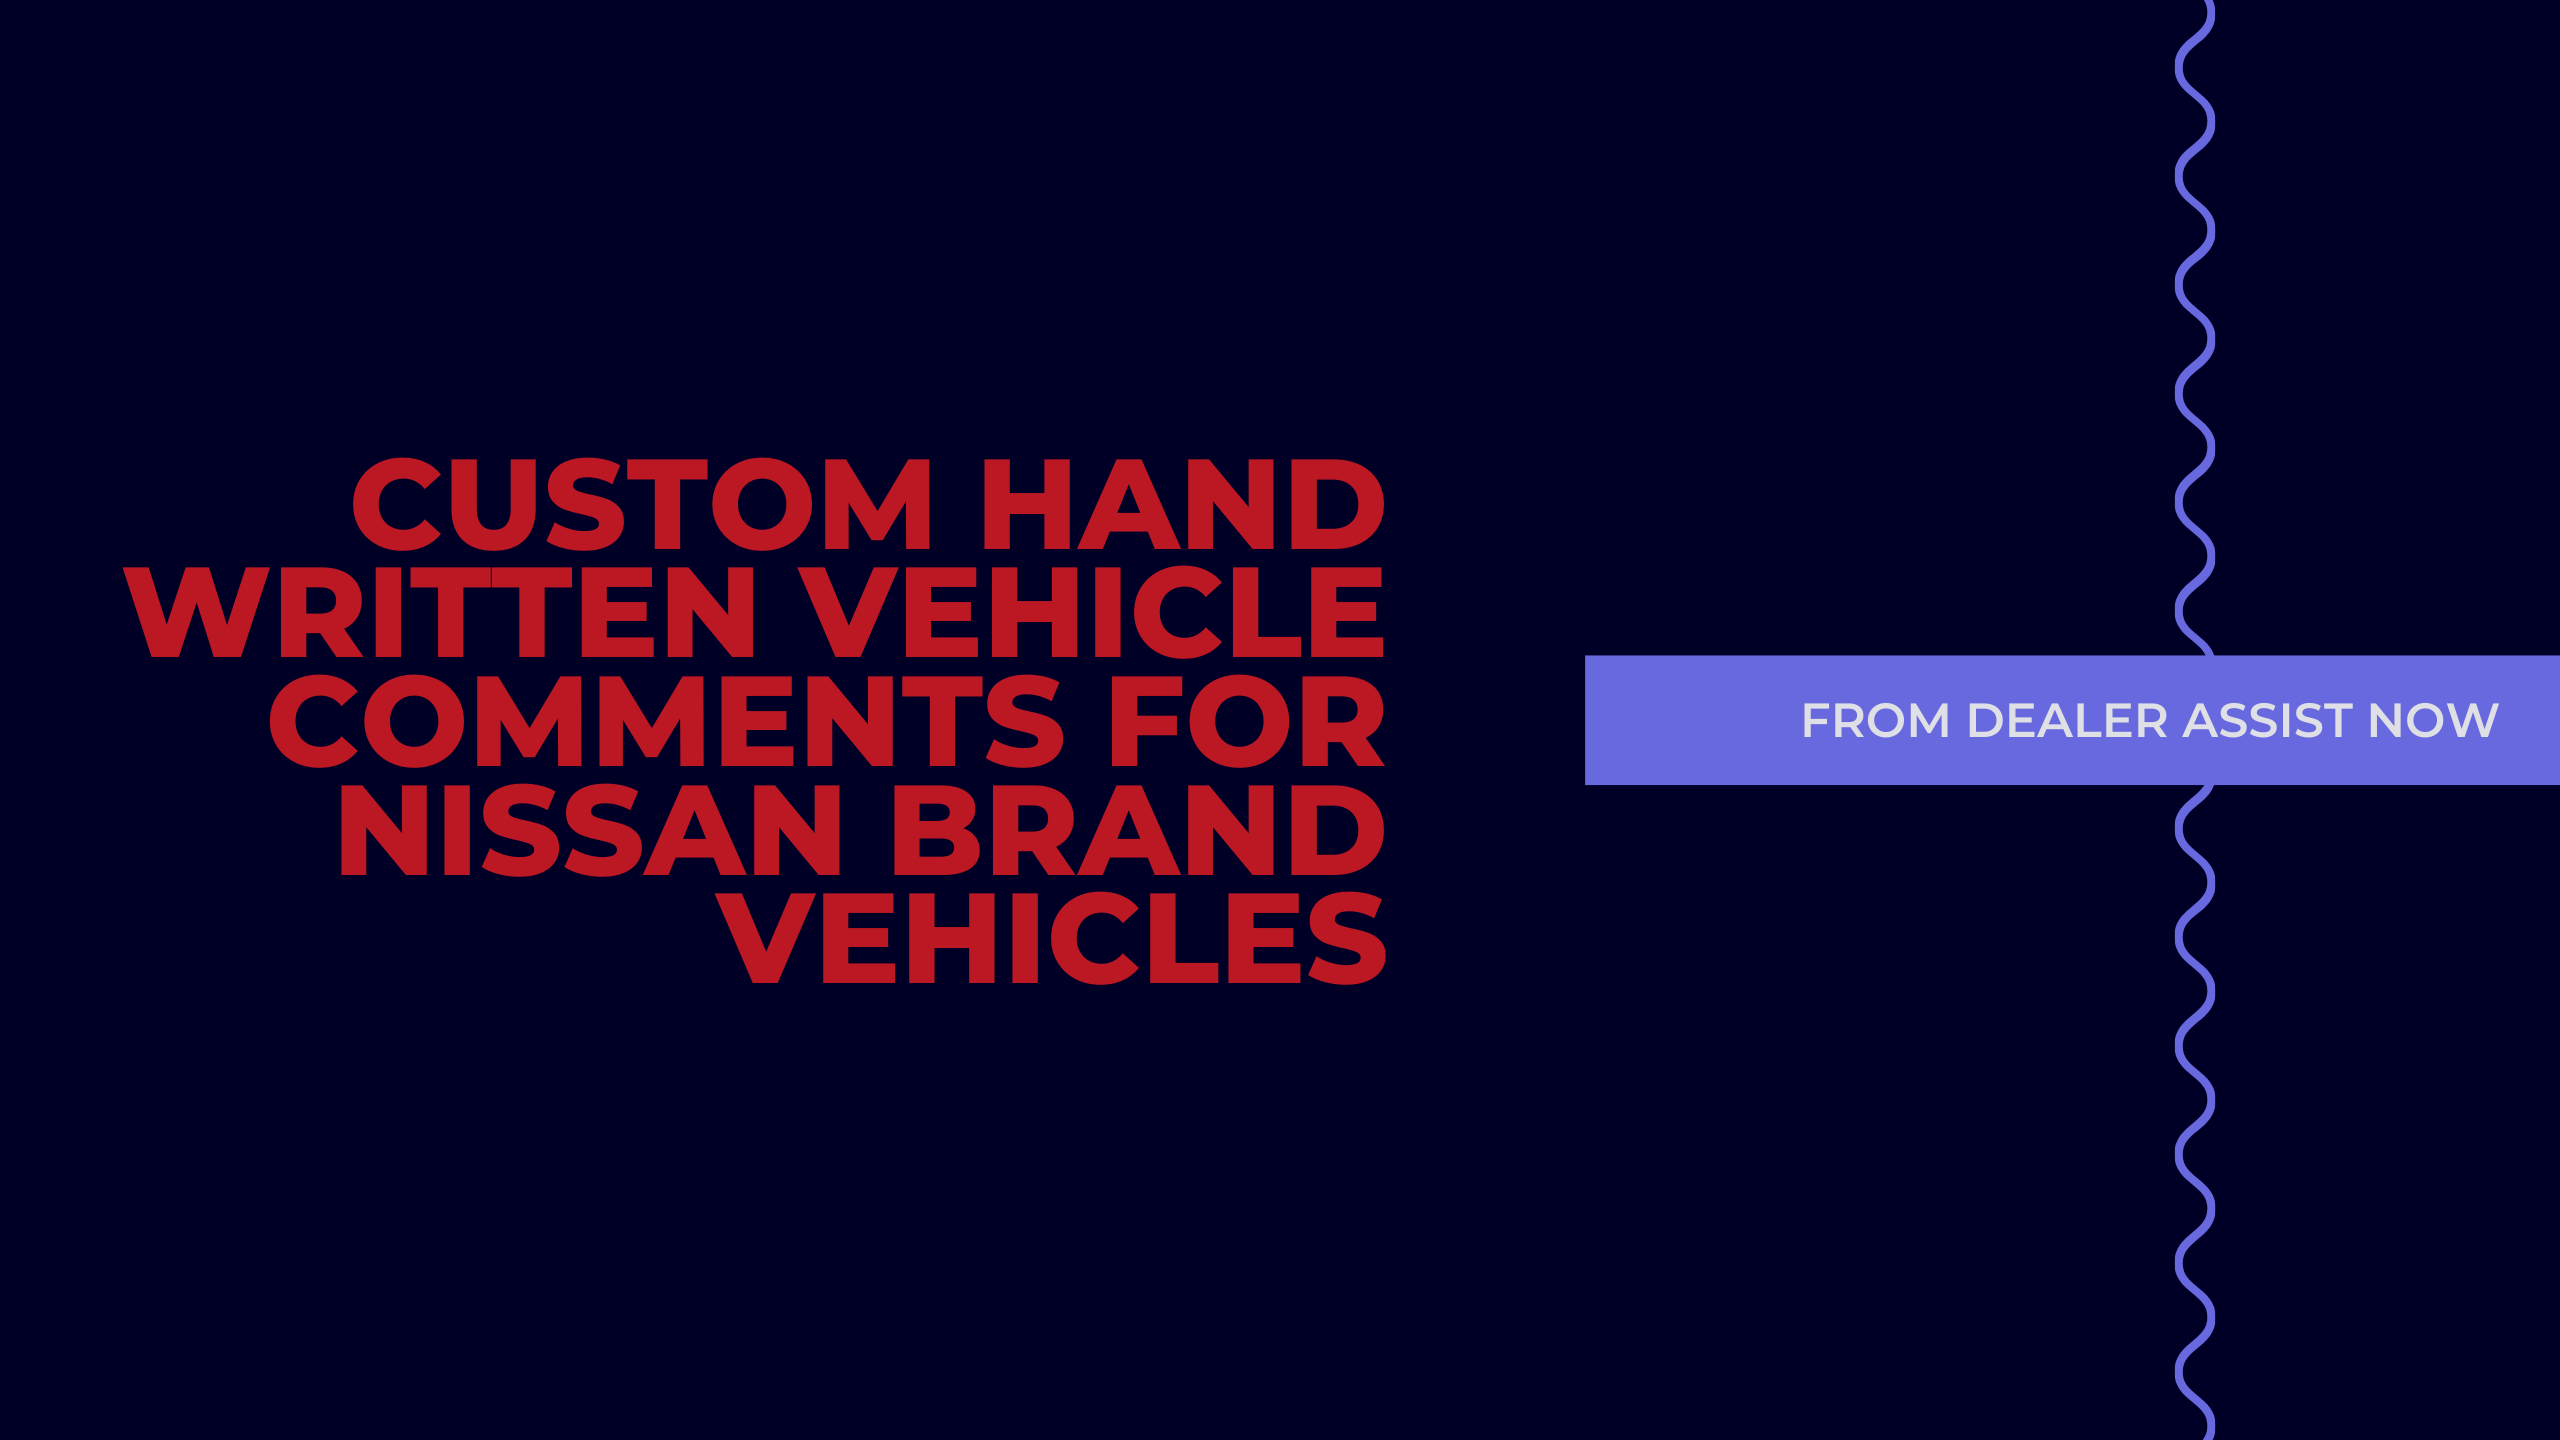 Custom Hand Written Vehicle Comments for Nissan Brand Vehicles